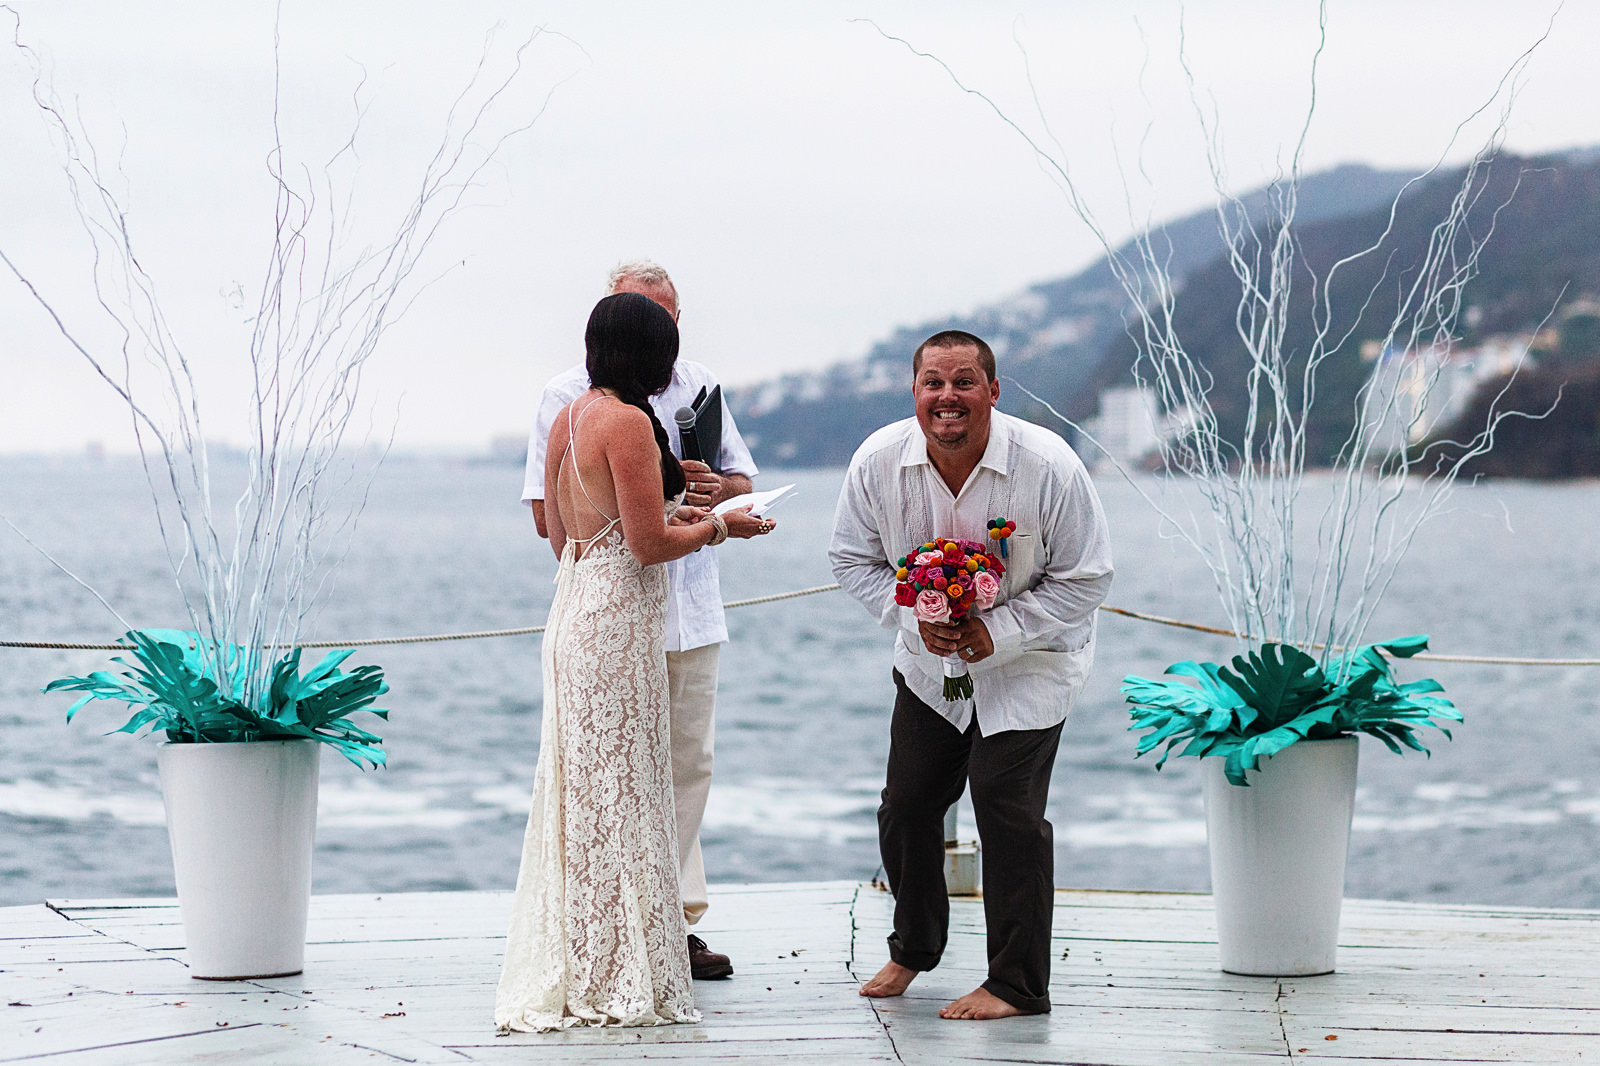 Groom takes the bouquet and smiles at the wedding guests as he turns to them